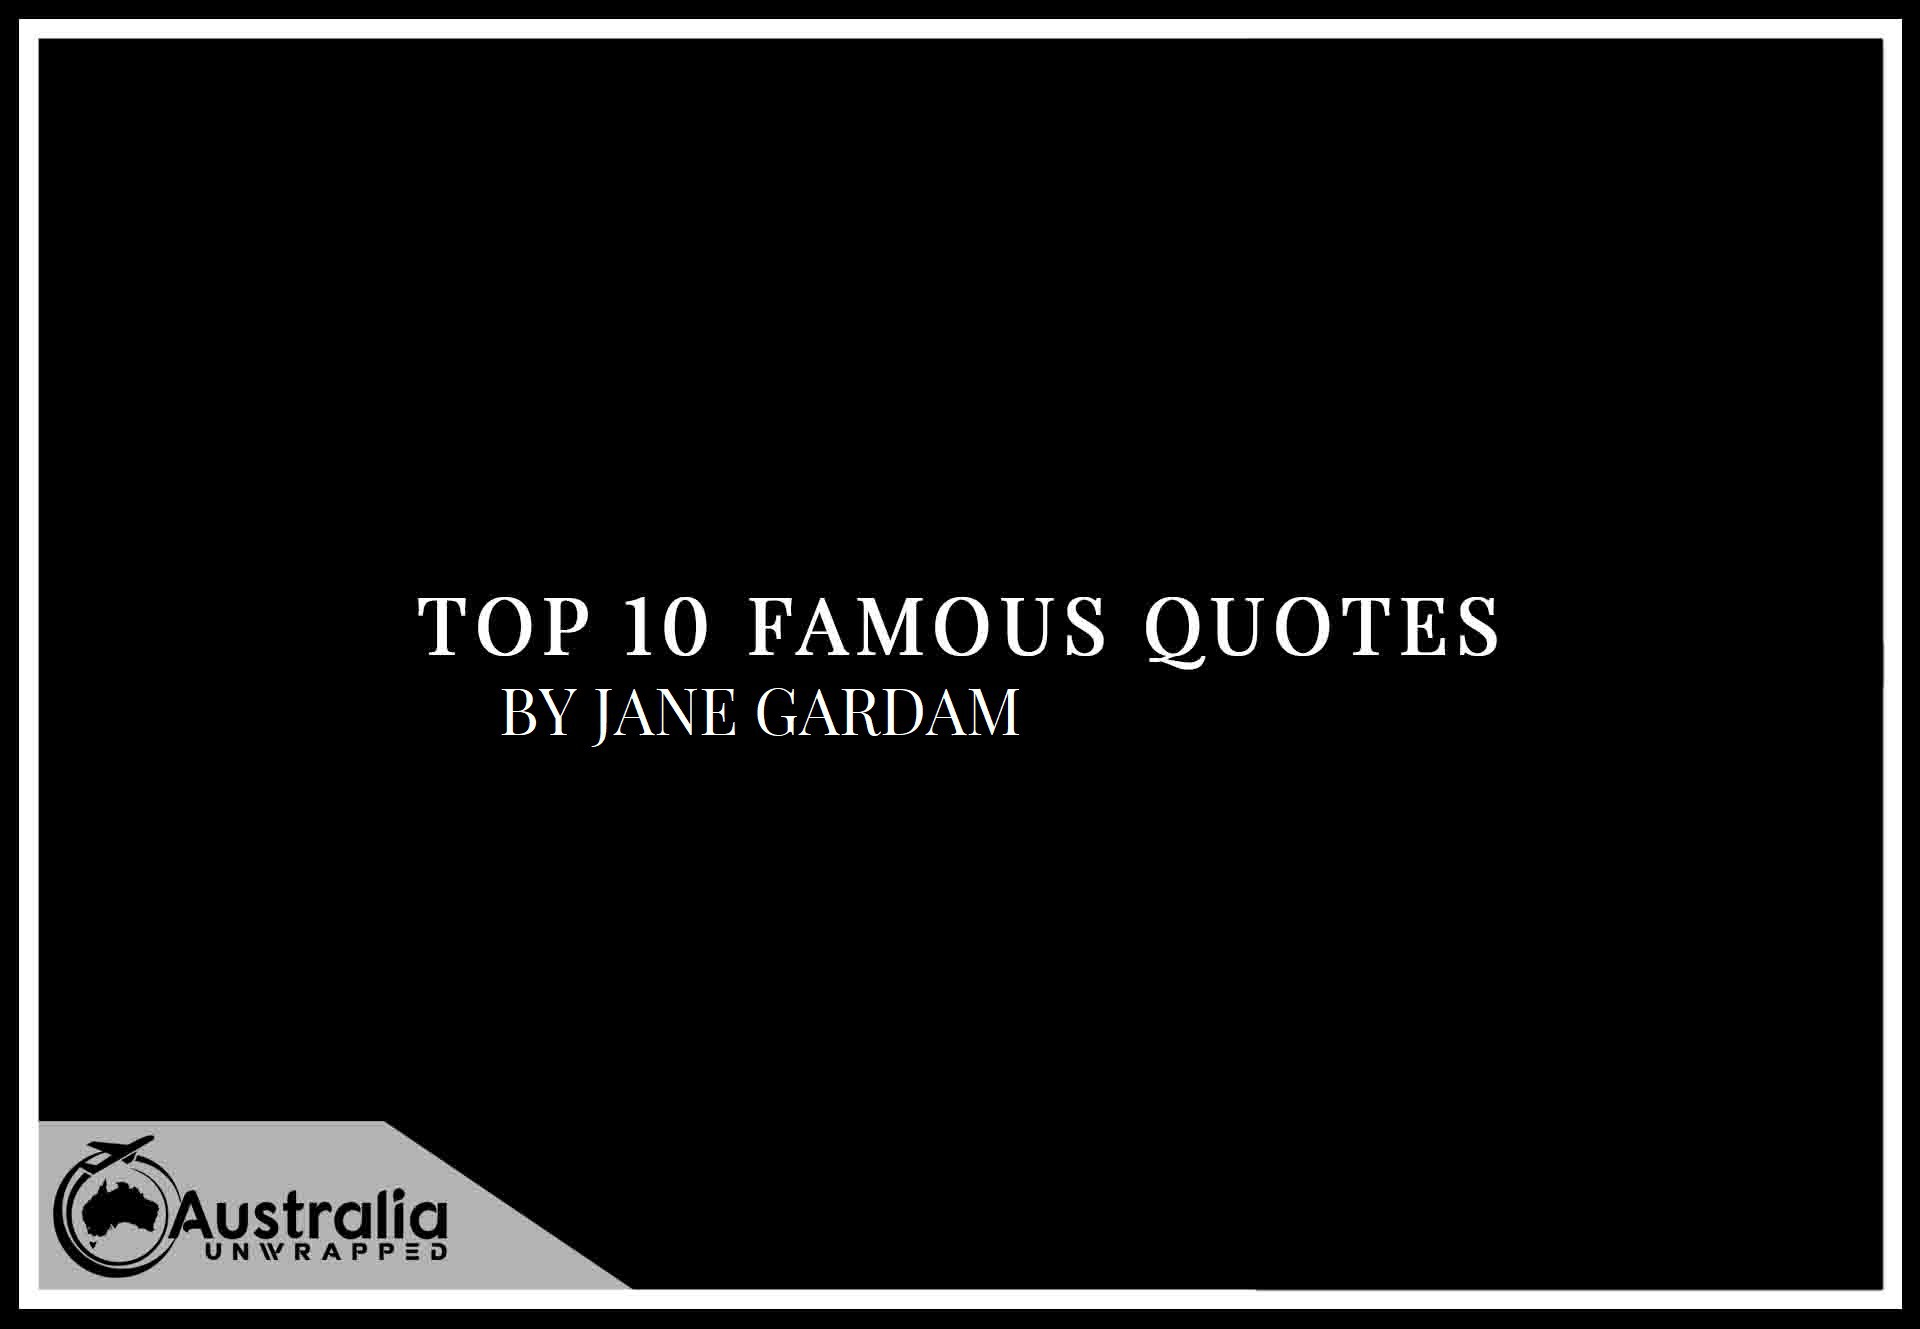 Top 10 Famous Quotes by Author Jane Gardam